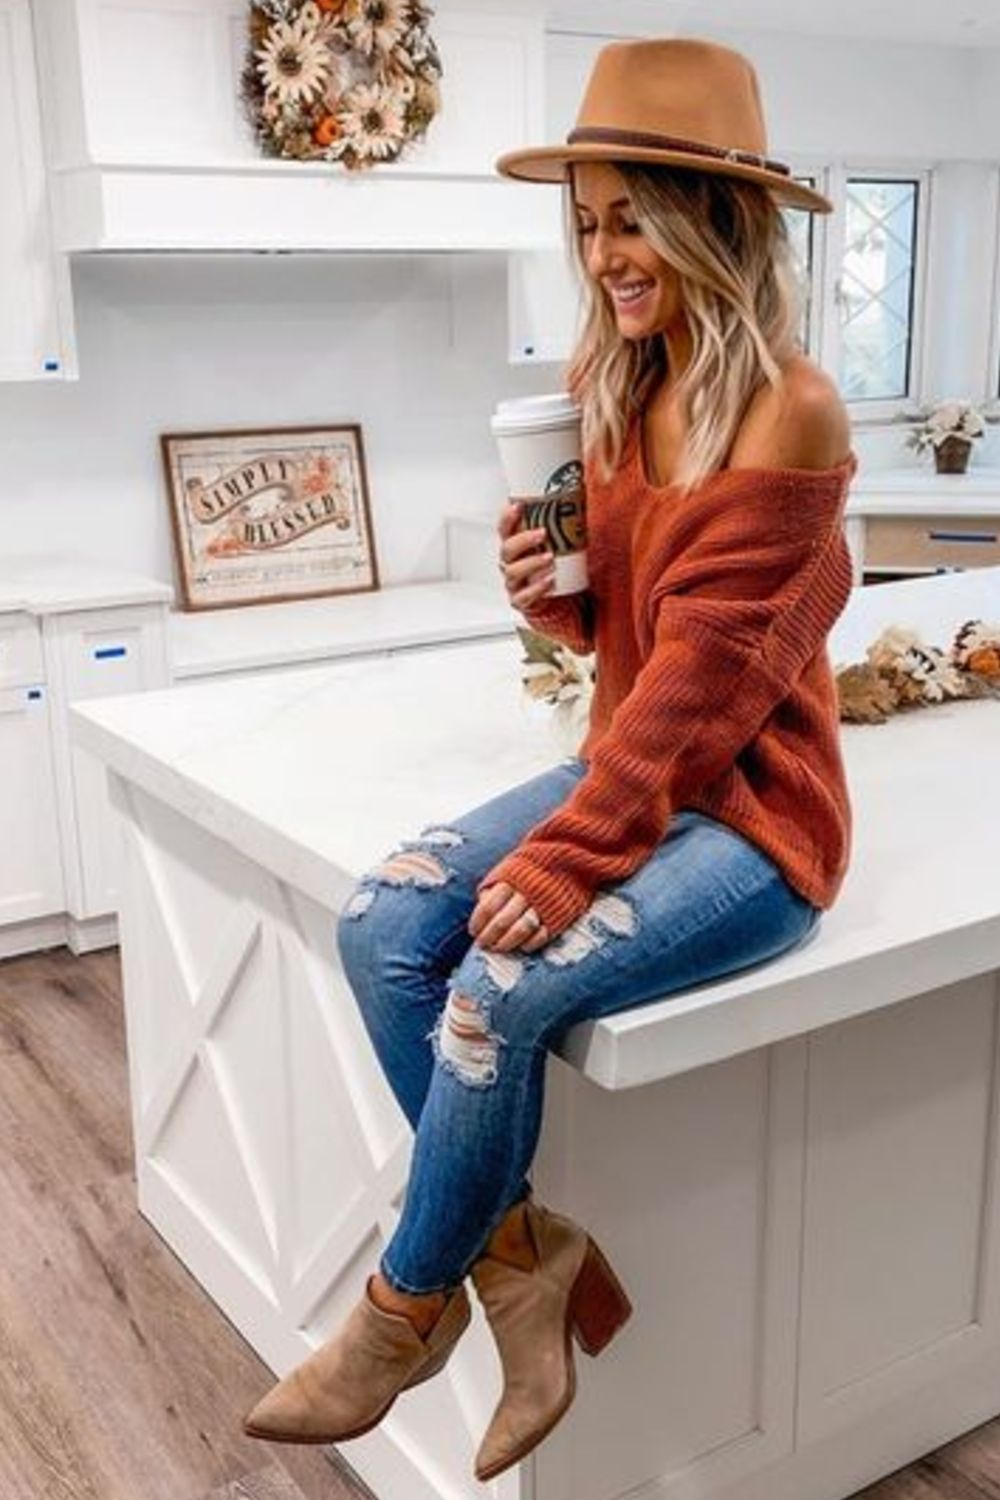 Women's Ankle Boots Casual Fashion Outfit - Fall winter outfits - Honorable BLog #falloutfits